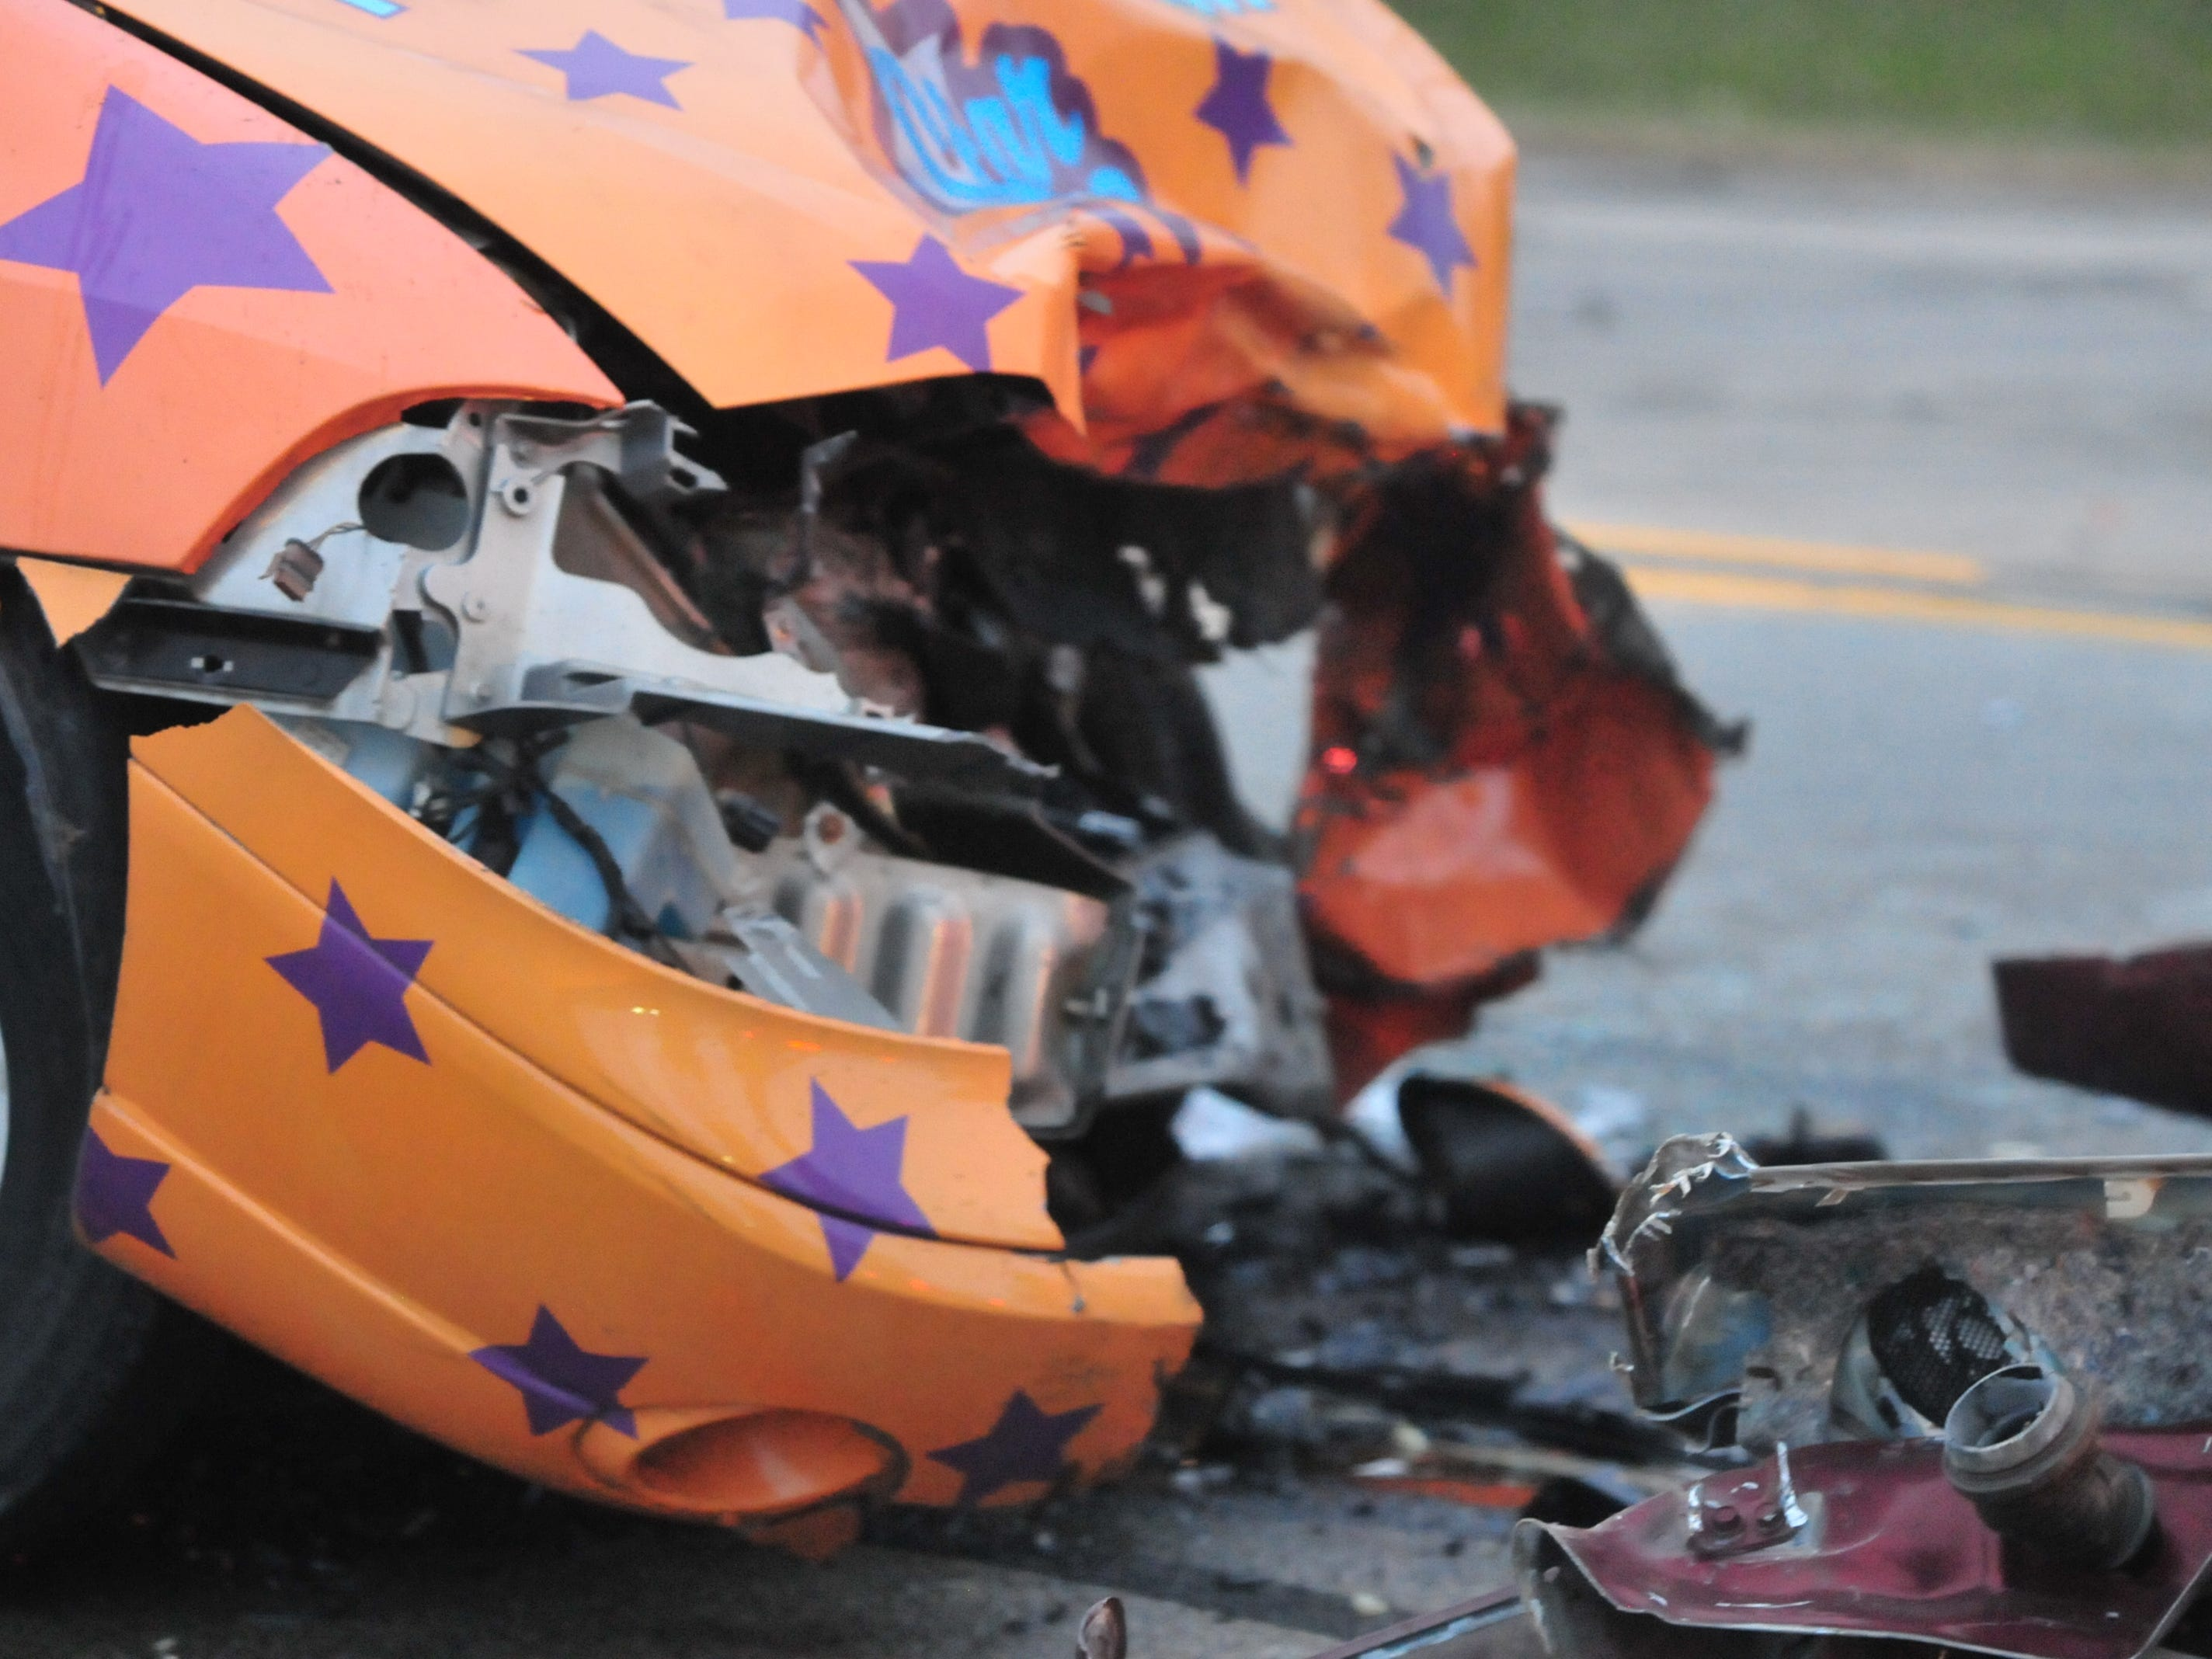 A Ford van was damaged Tuesday during a head-on collision with a Pontiac Grand Prix on Salisbury Road.